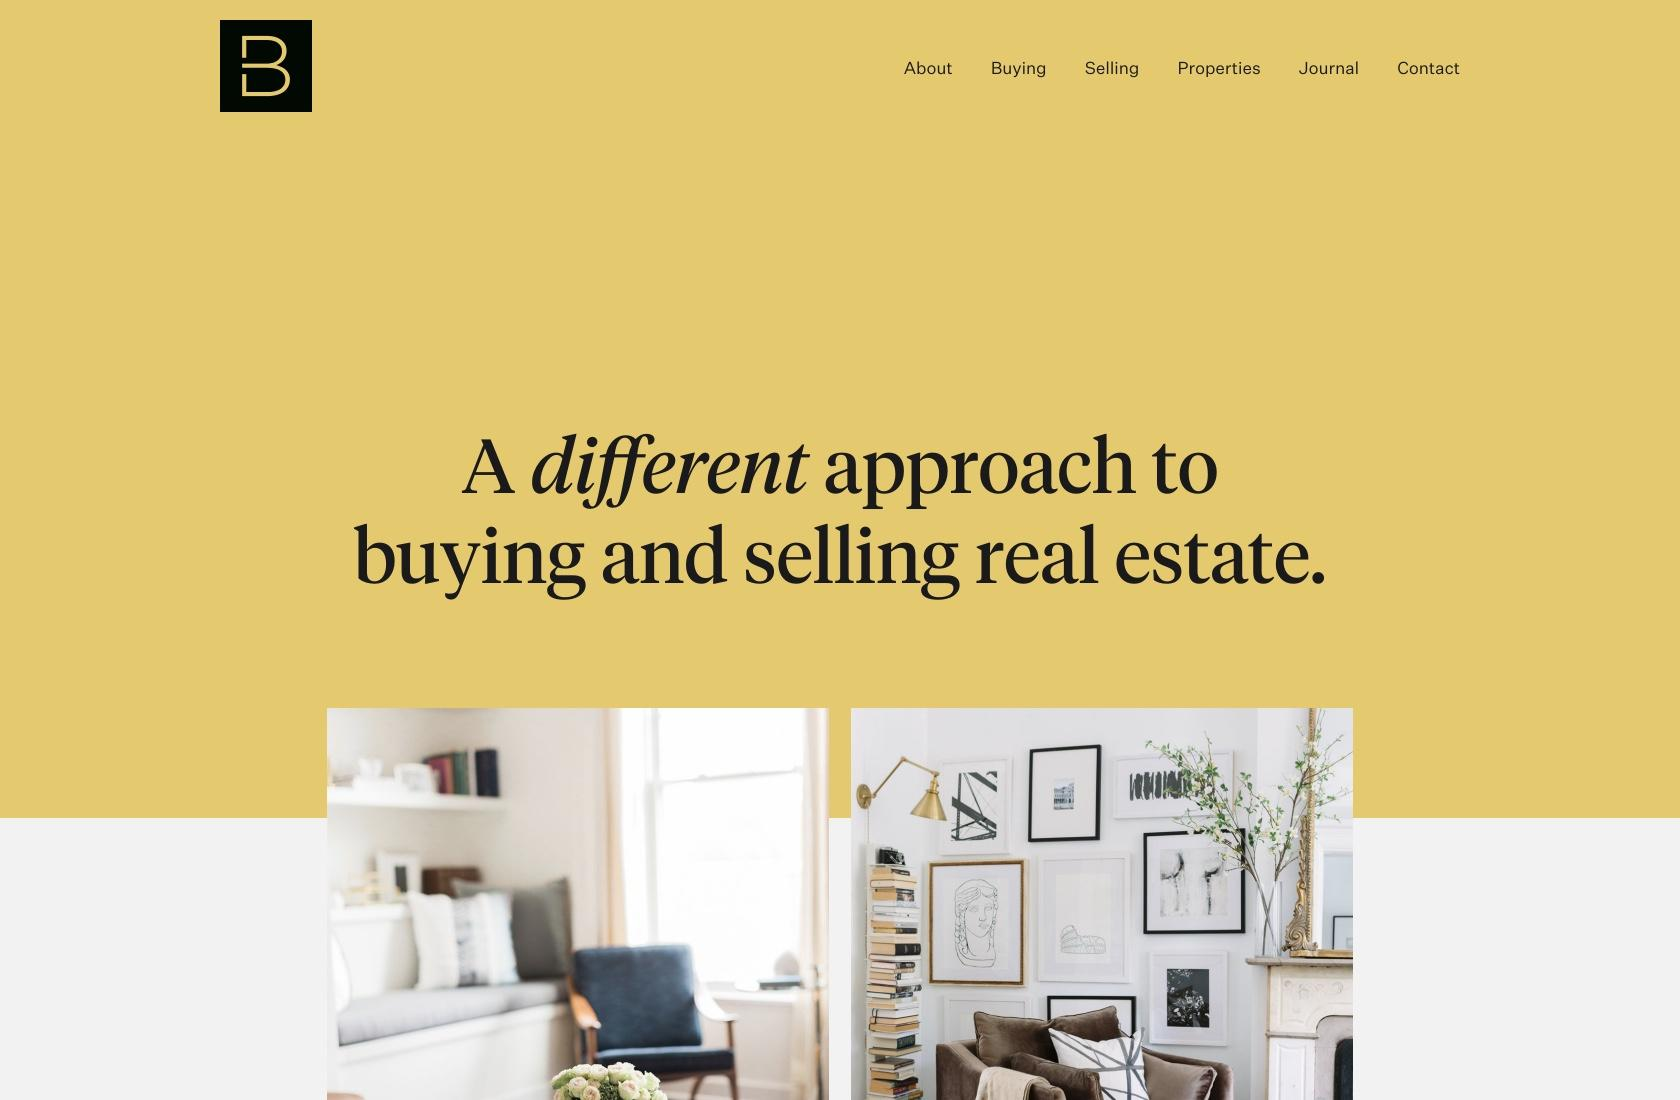 Another unexpected website color scheme on this real estate site